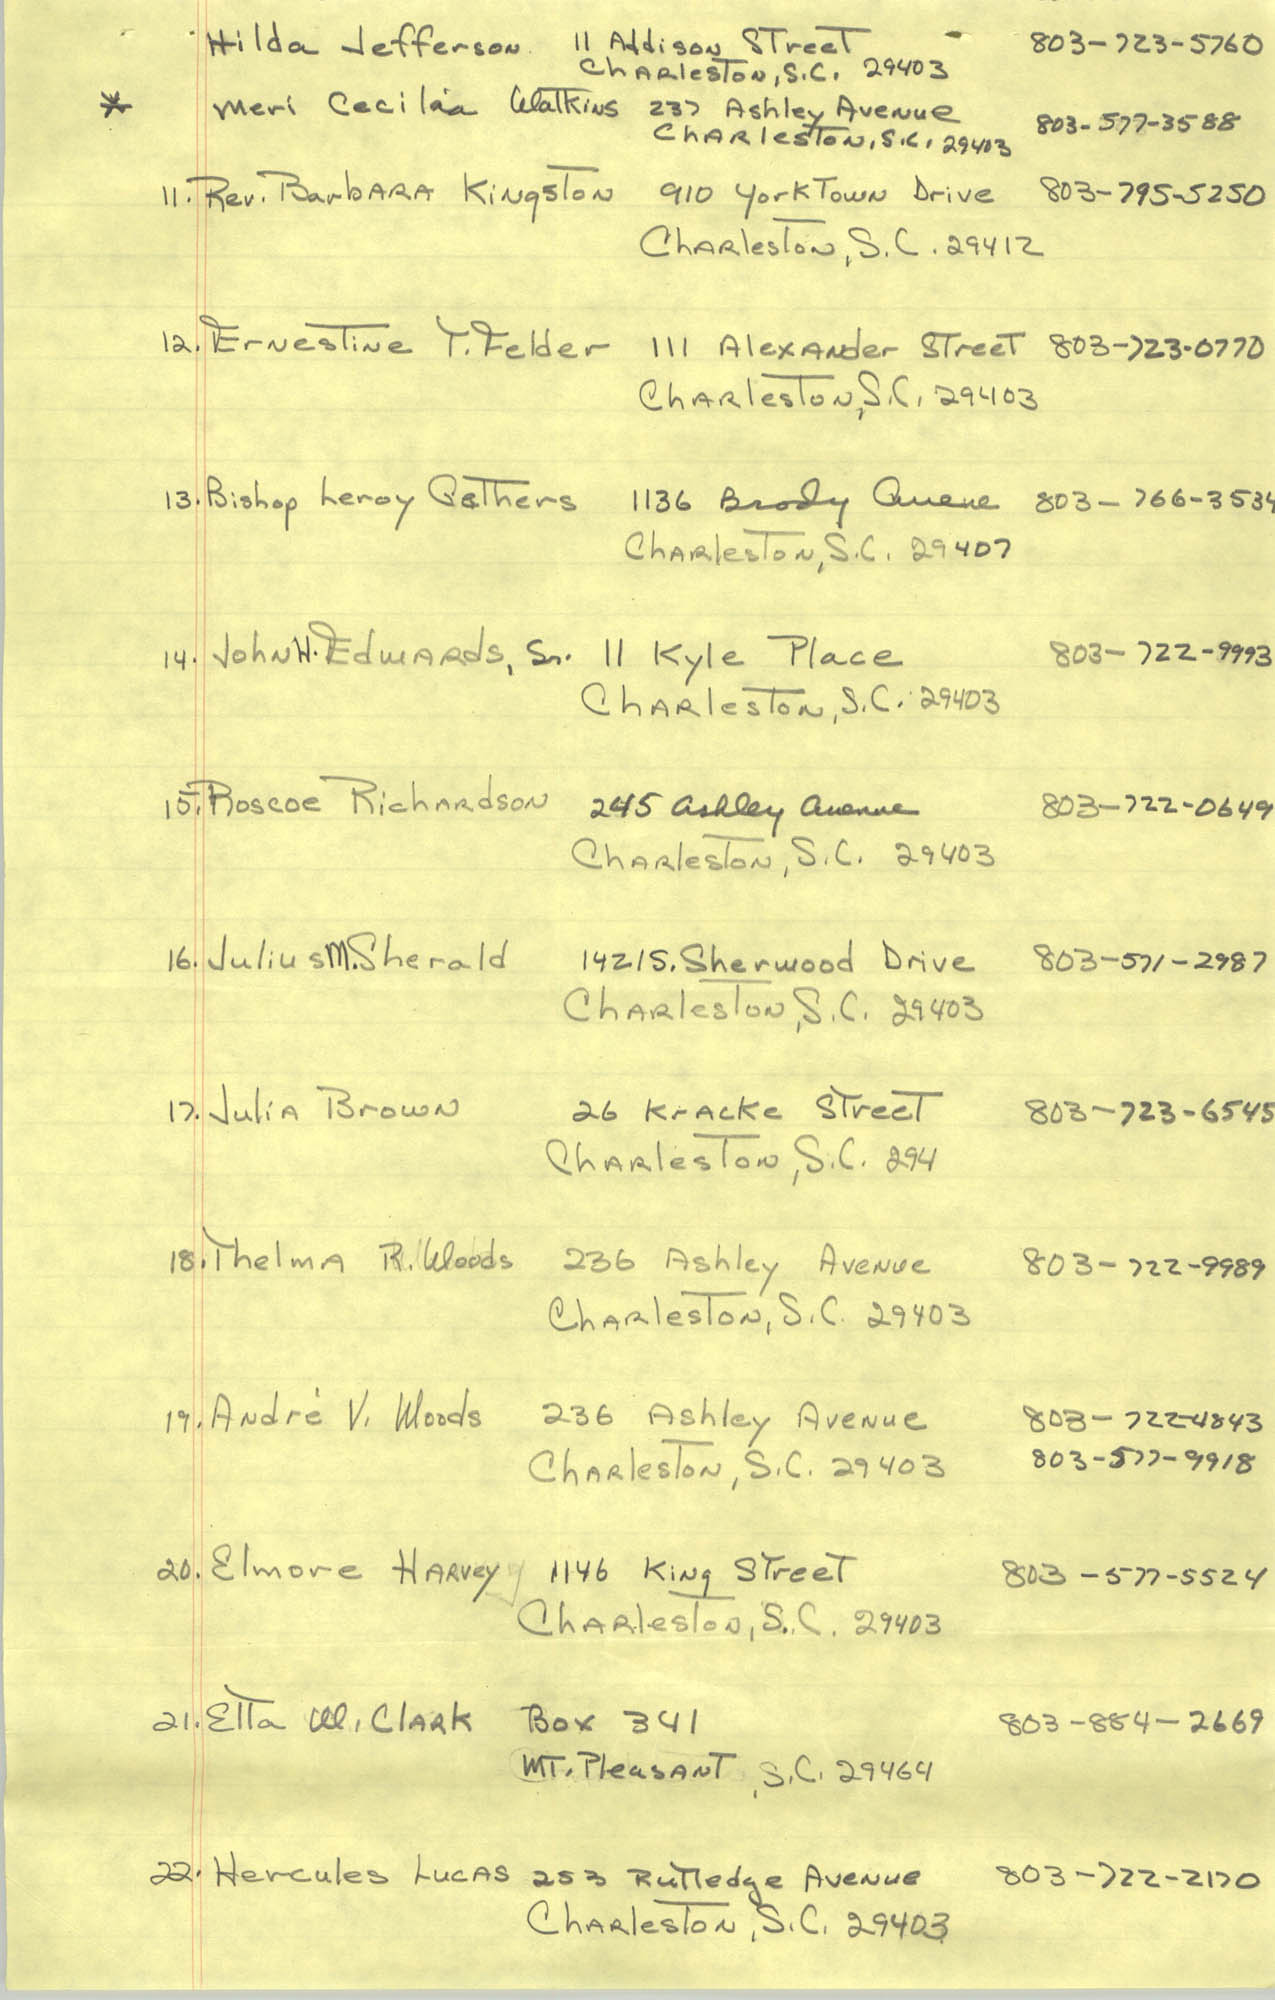 1982-83 Roster of Officials of the Charleston, South Carolina Branch of the NAACP, Page 3